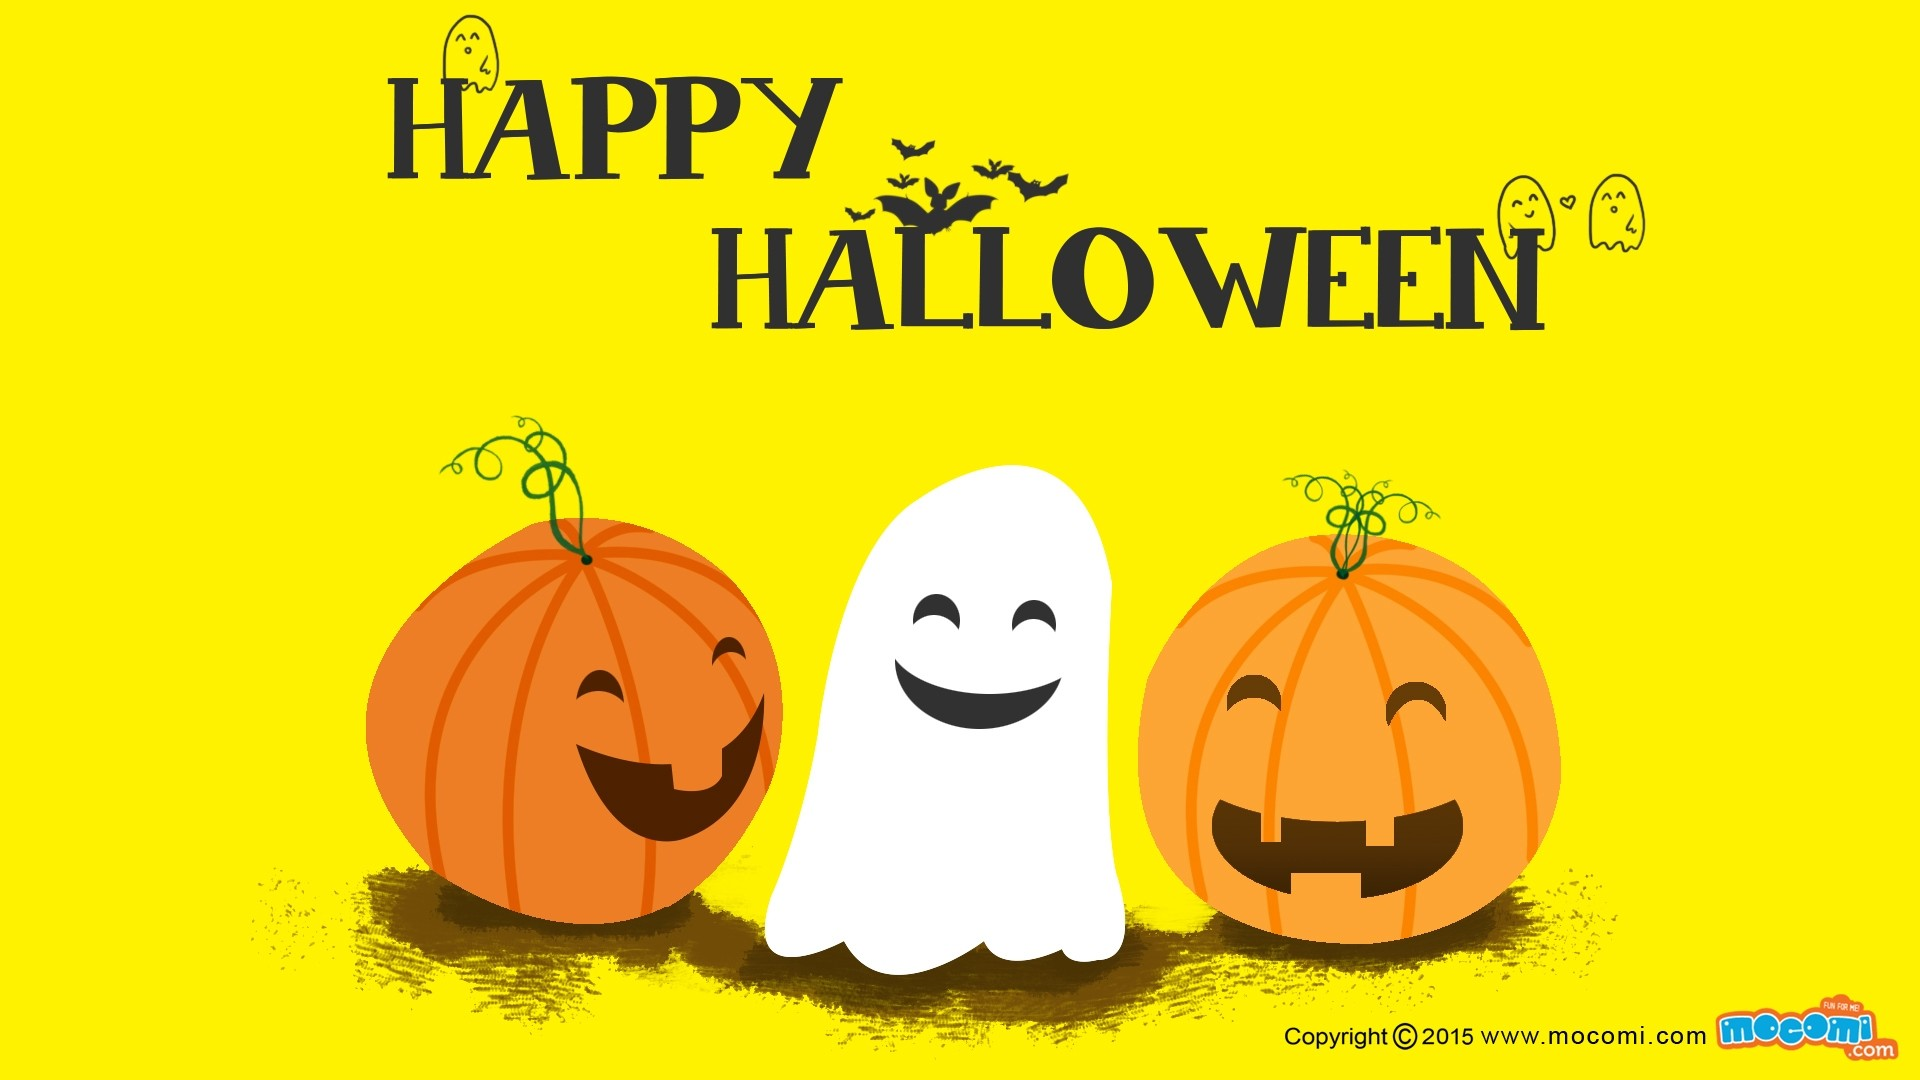 Halloween Greeting Card Wallpaper for pc